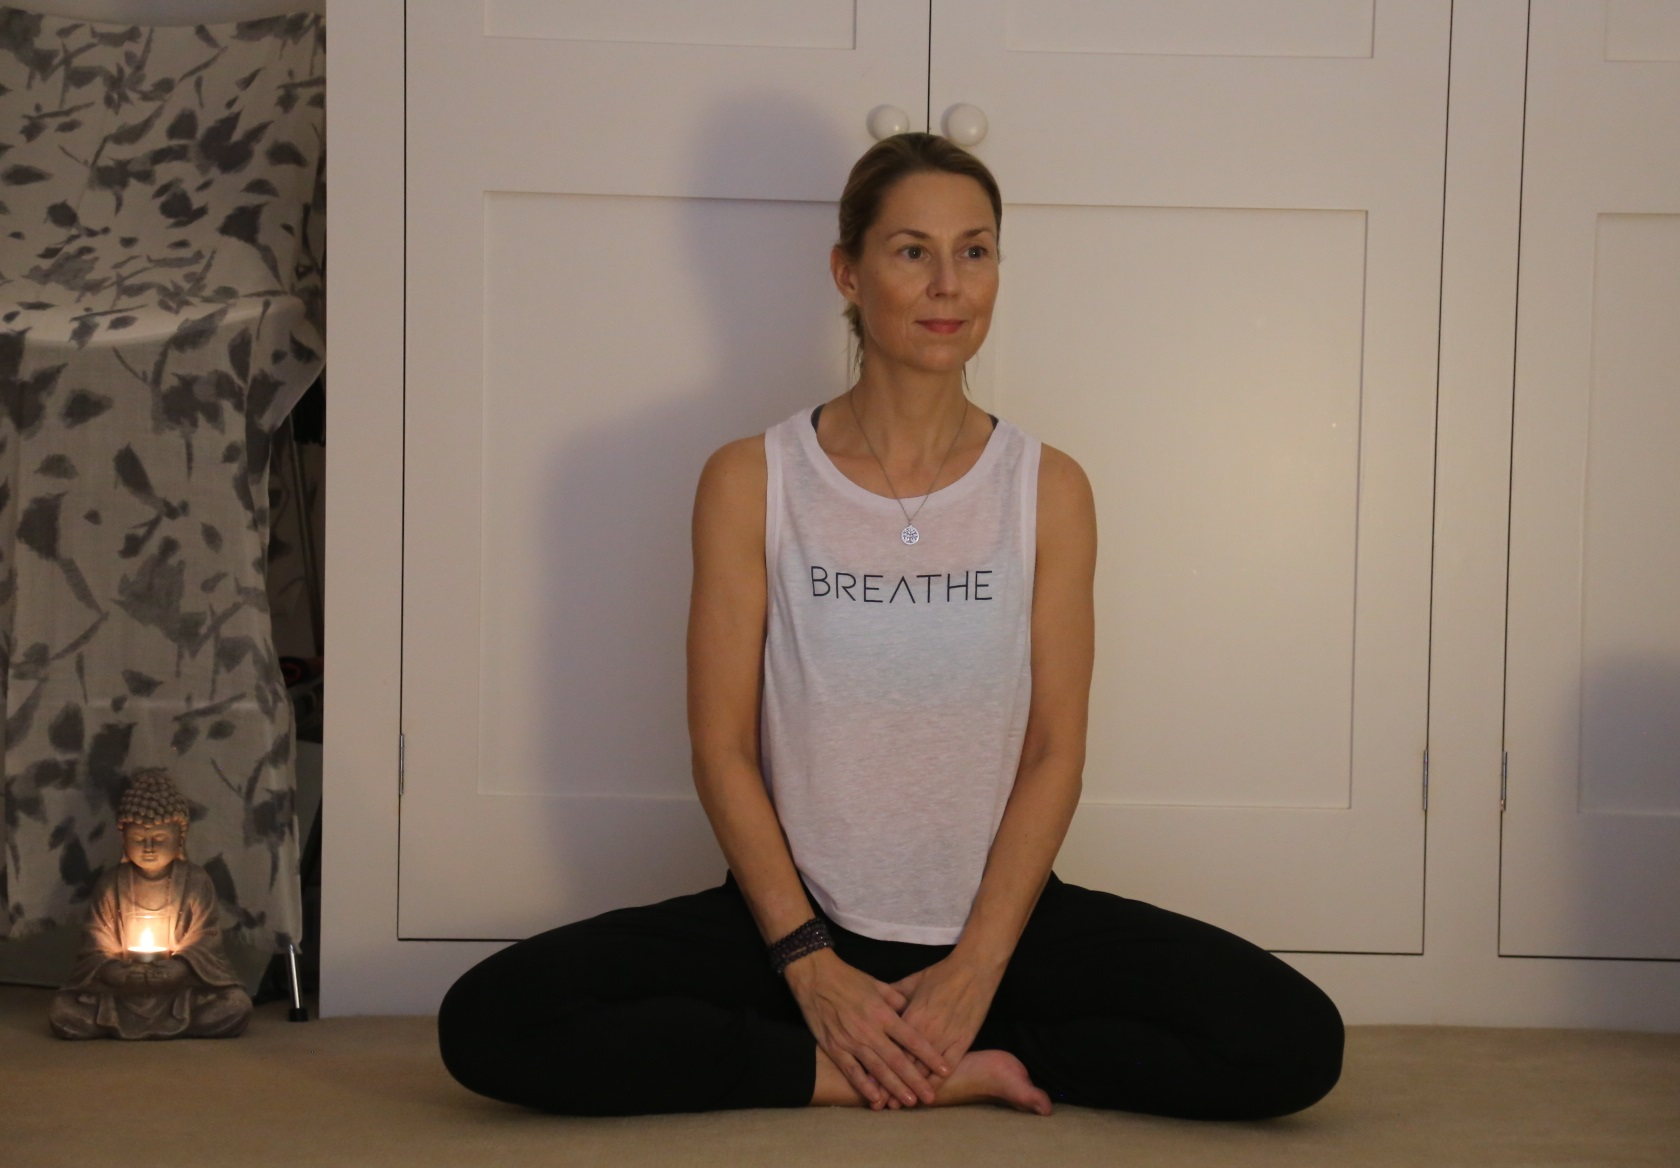 All about the breath